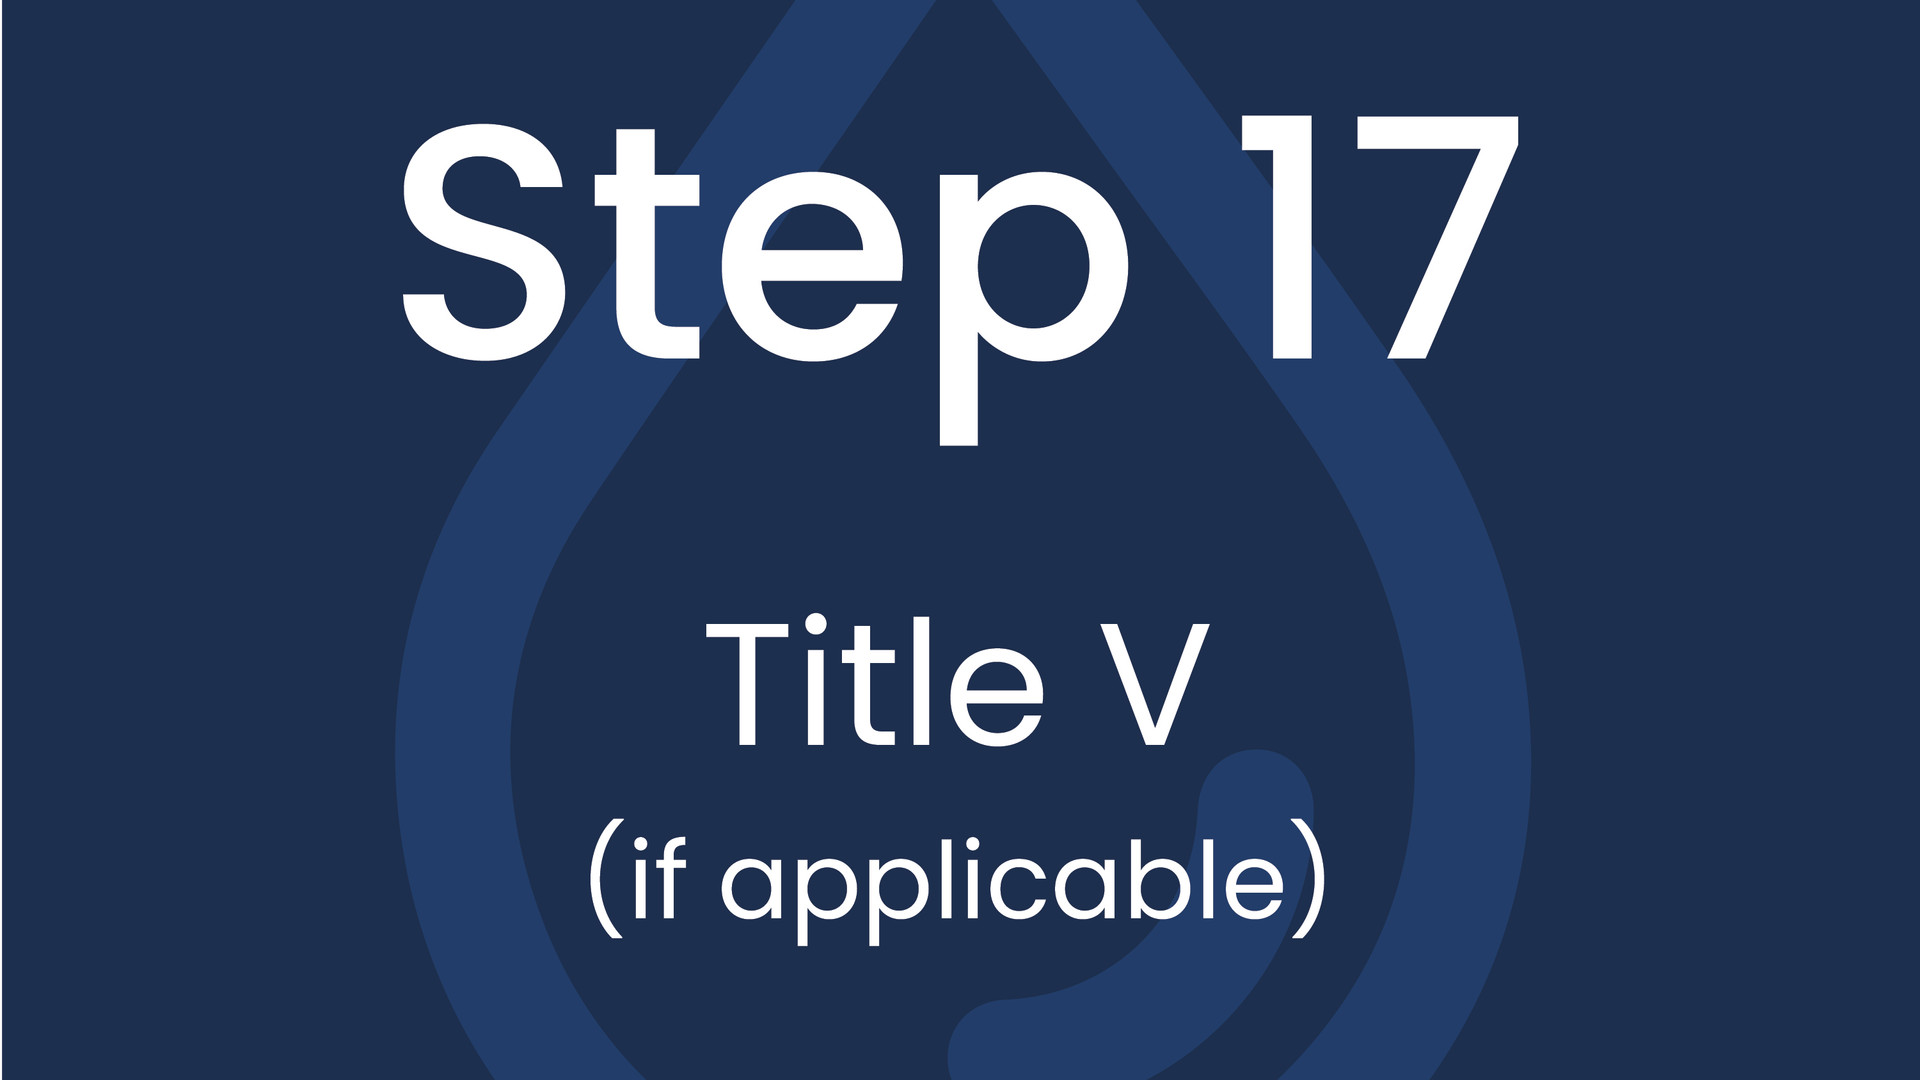 Step 17: Title V (if applicable)